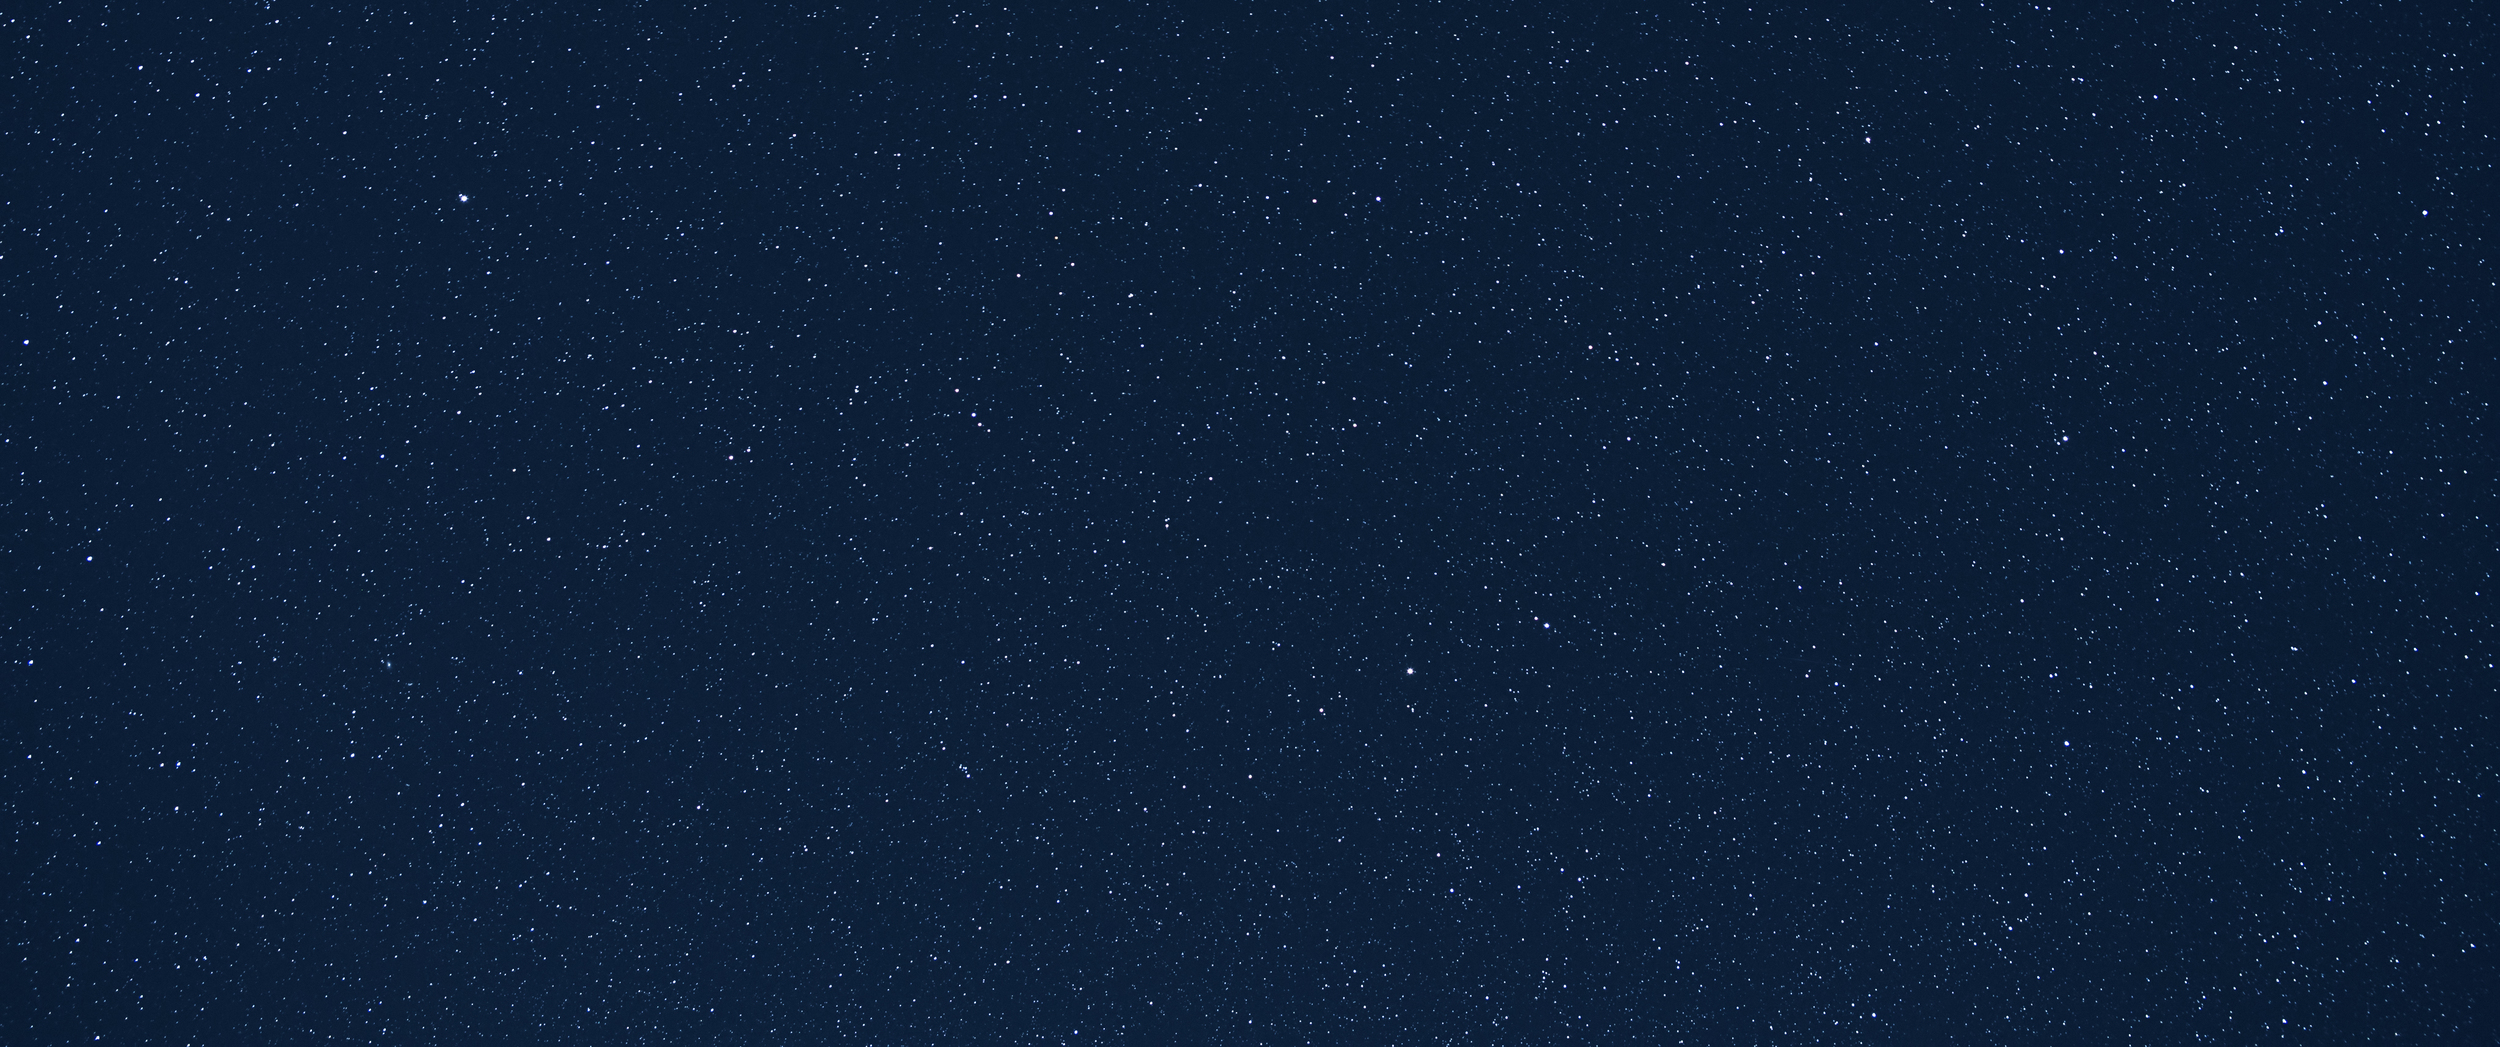 A deep view of the night sky presents thousands of stars in this single frame.